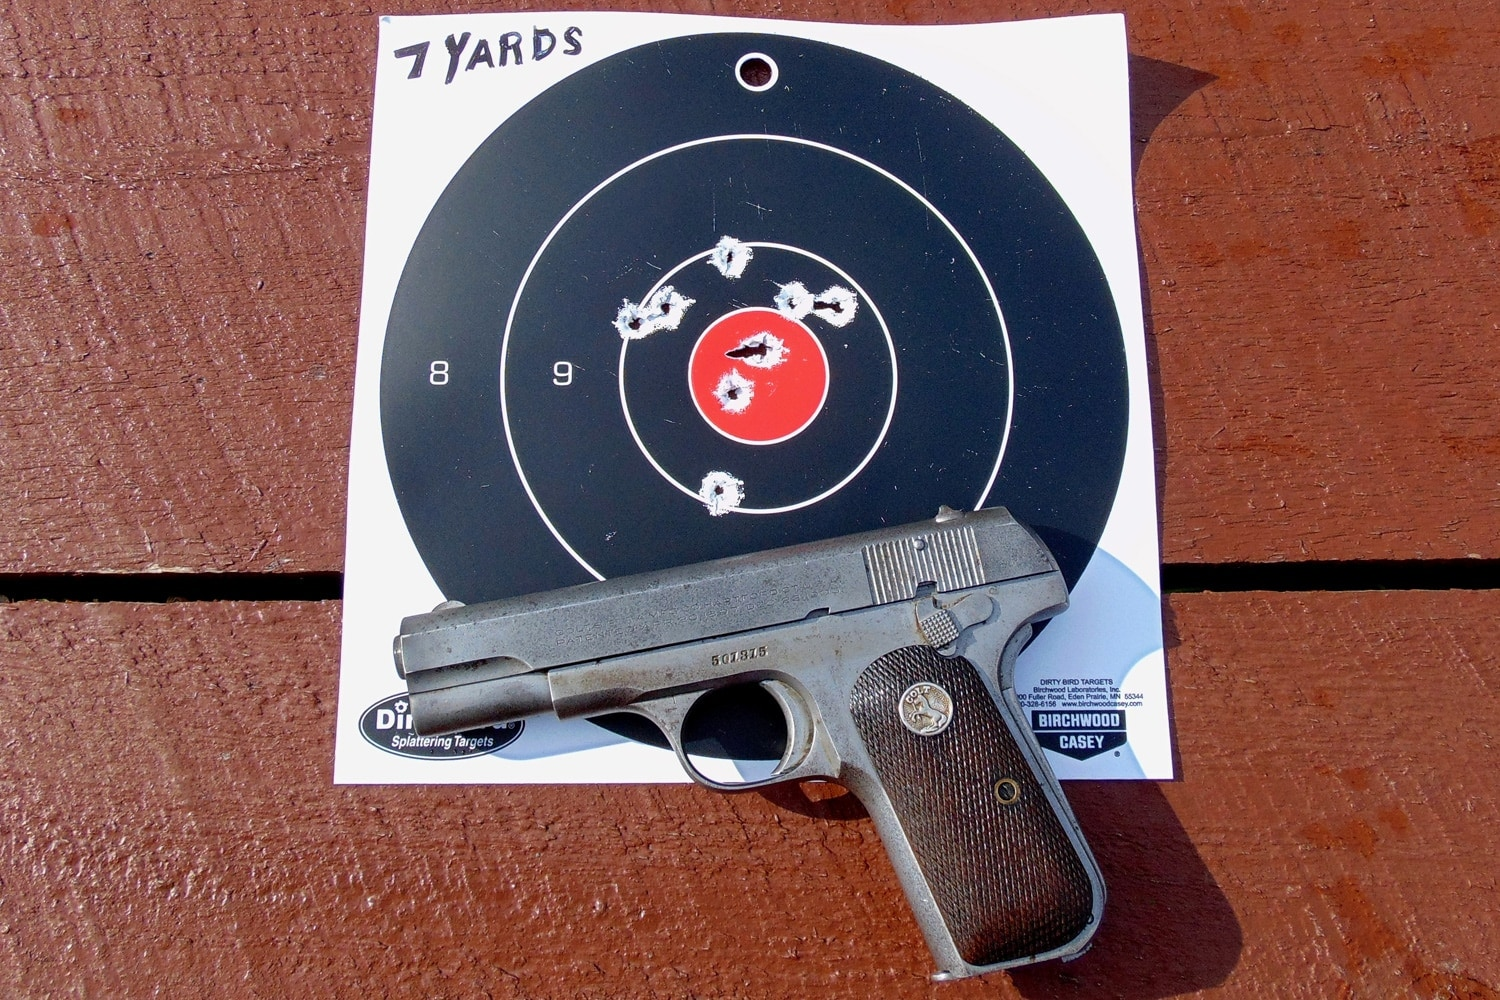 The Colt 1903 pistol not bad at seven yards. (Photo: David LaPell)